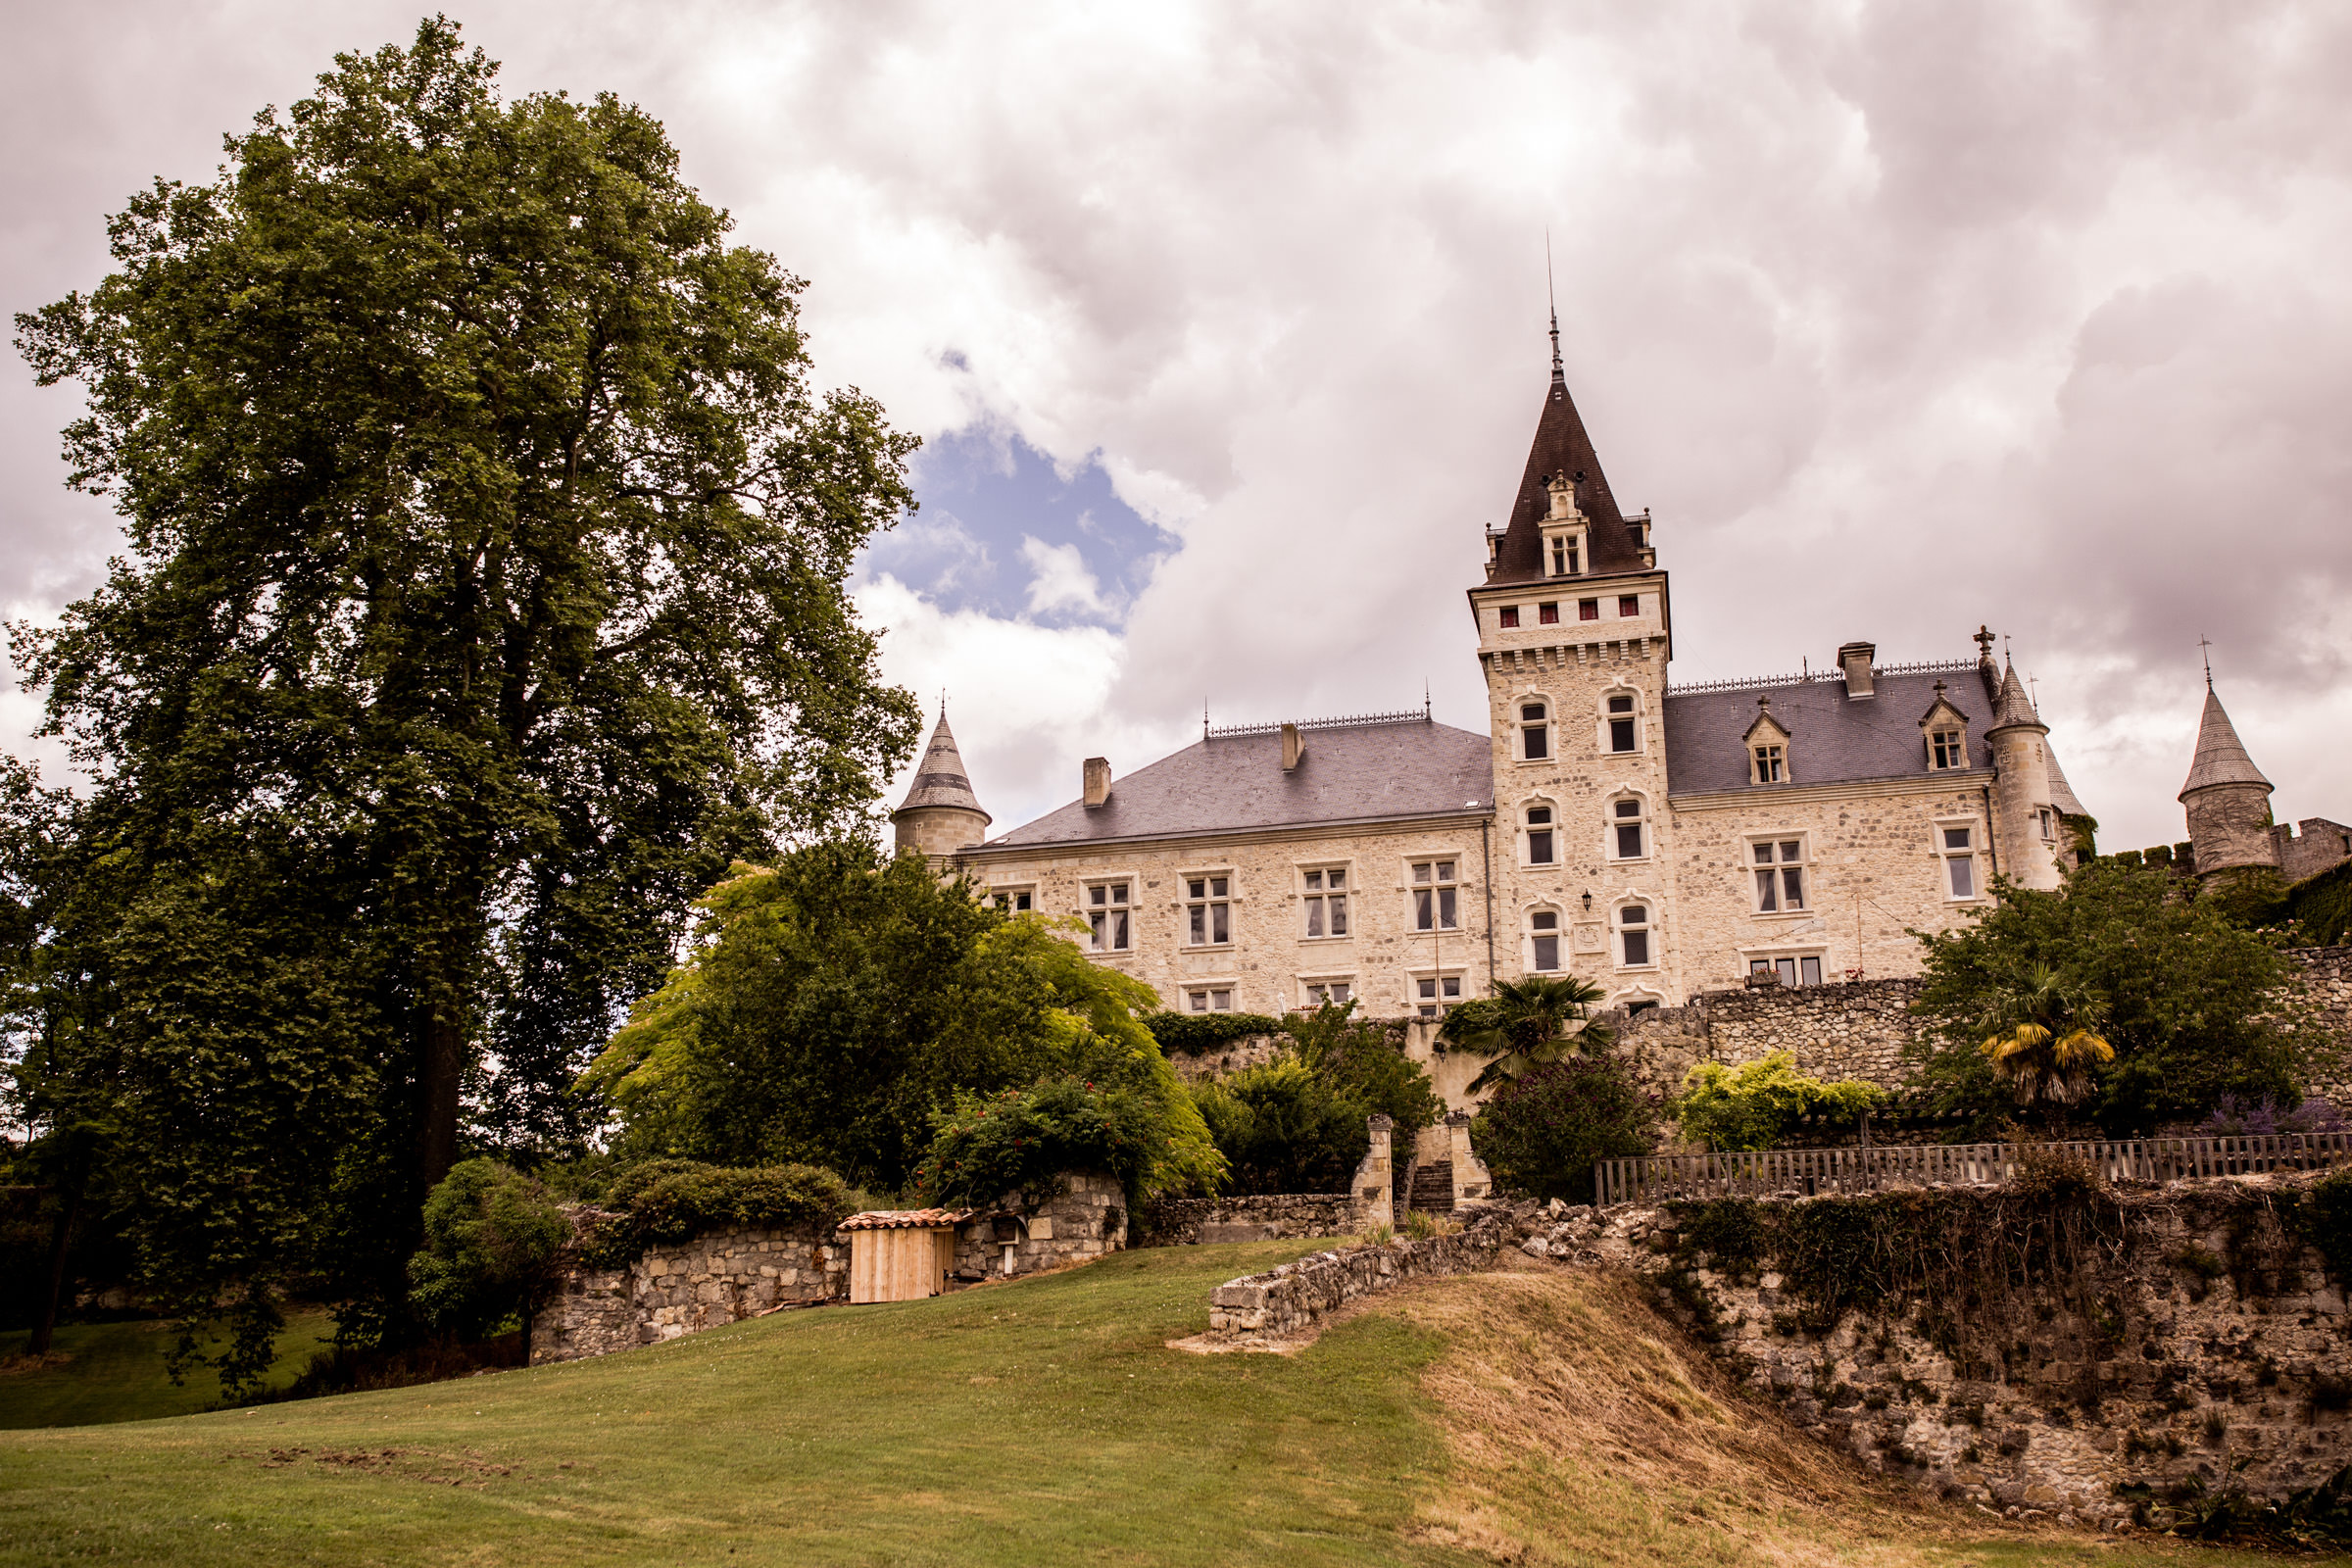 Uk Wedding photographers working at chateau de lisse in gascony 001.jpg